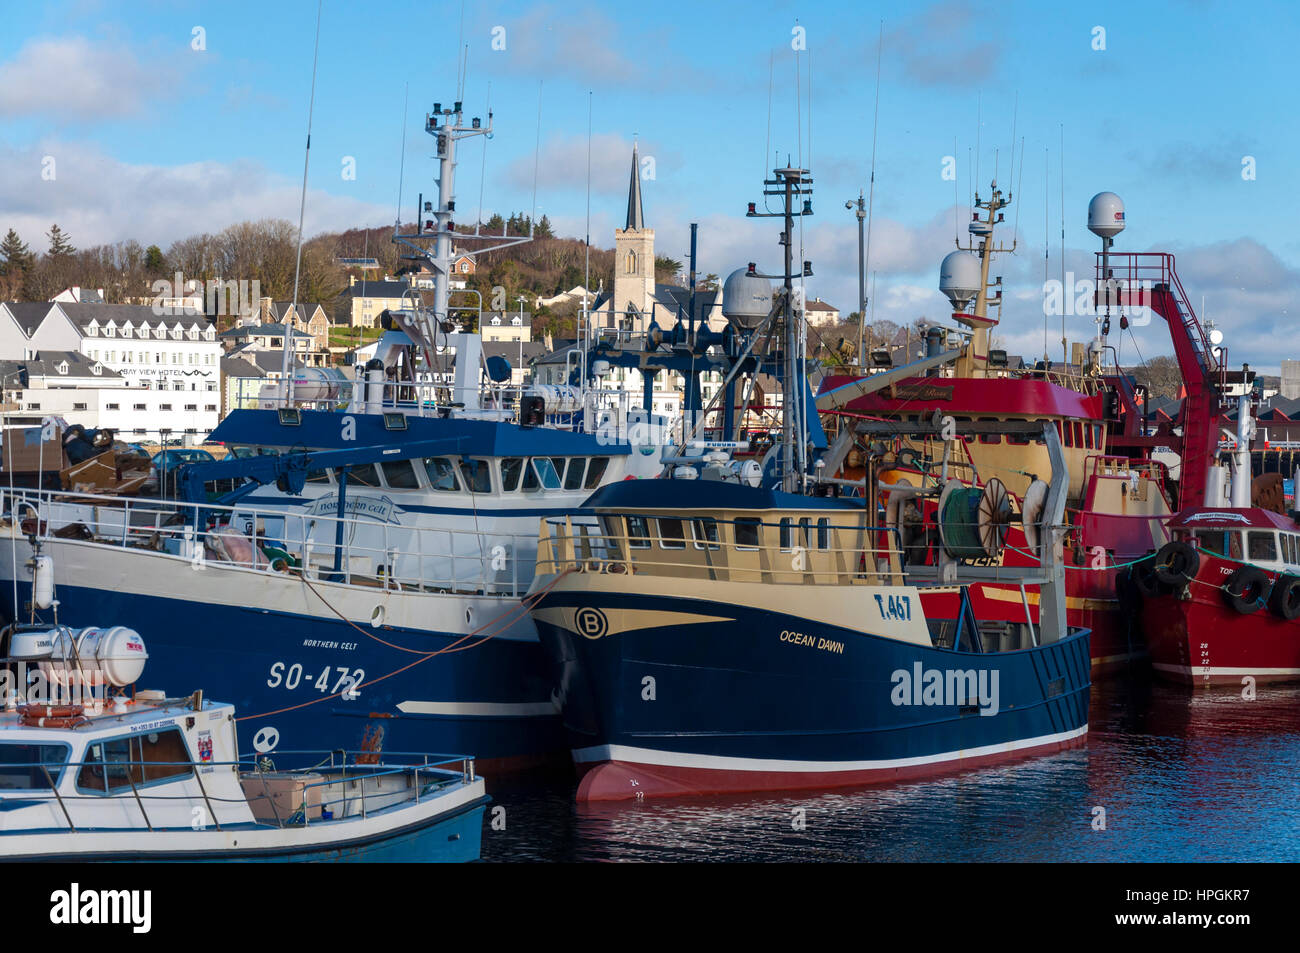 Killybegs fishing port harbour and boats, County Donegal, Ireland - Stock Image